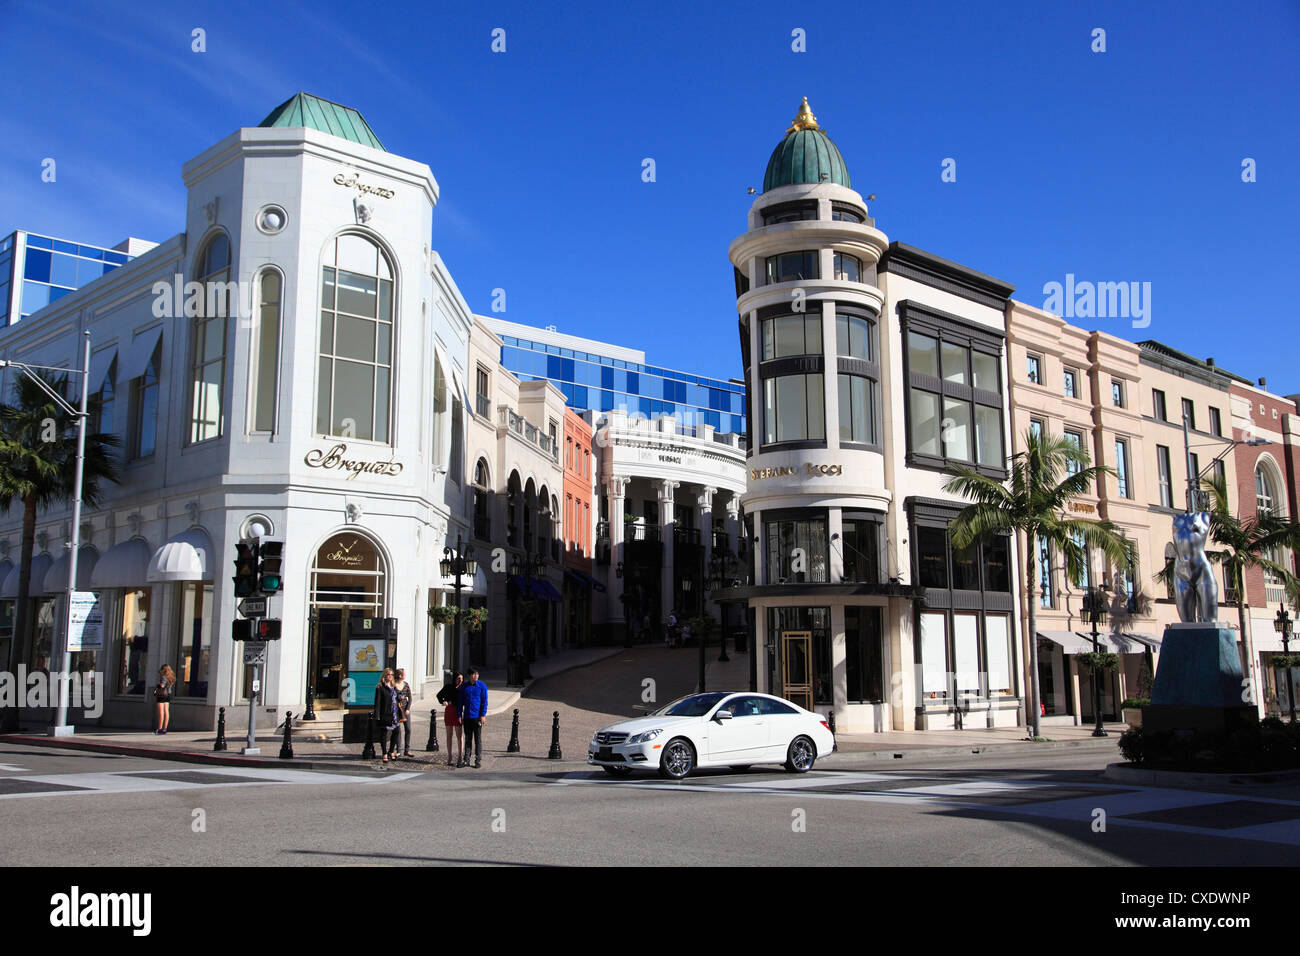 Rodeo Drive, Beverly Hills, Los Angeles, California, USA - Stock Image